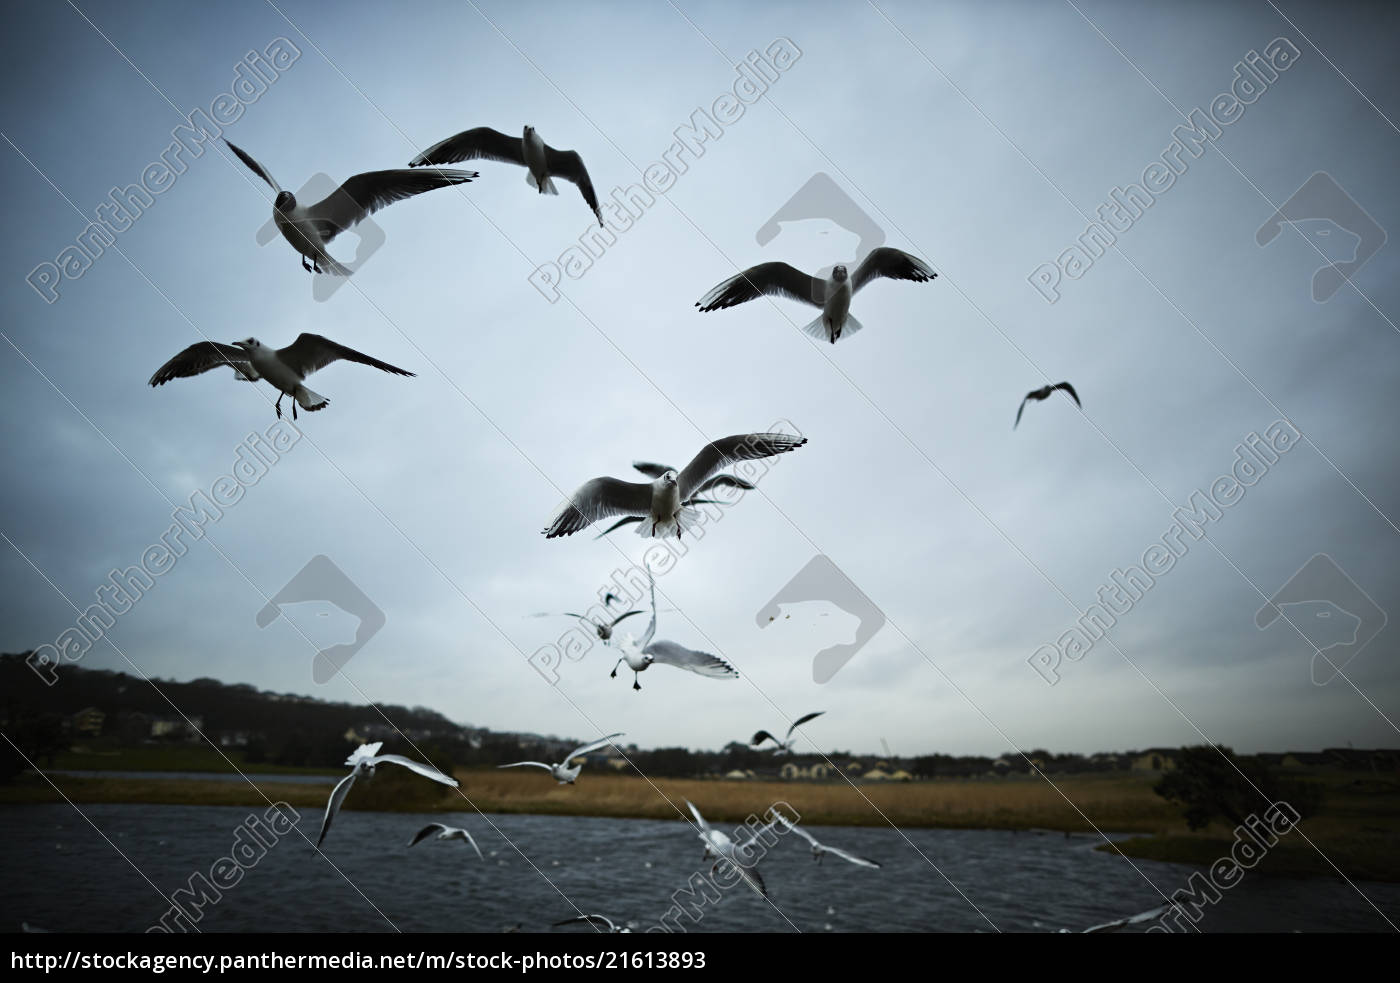 flock, of, seagulls, flying, near, lake - 21613893